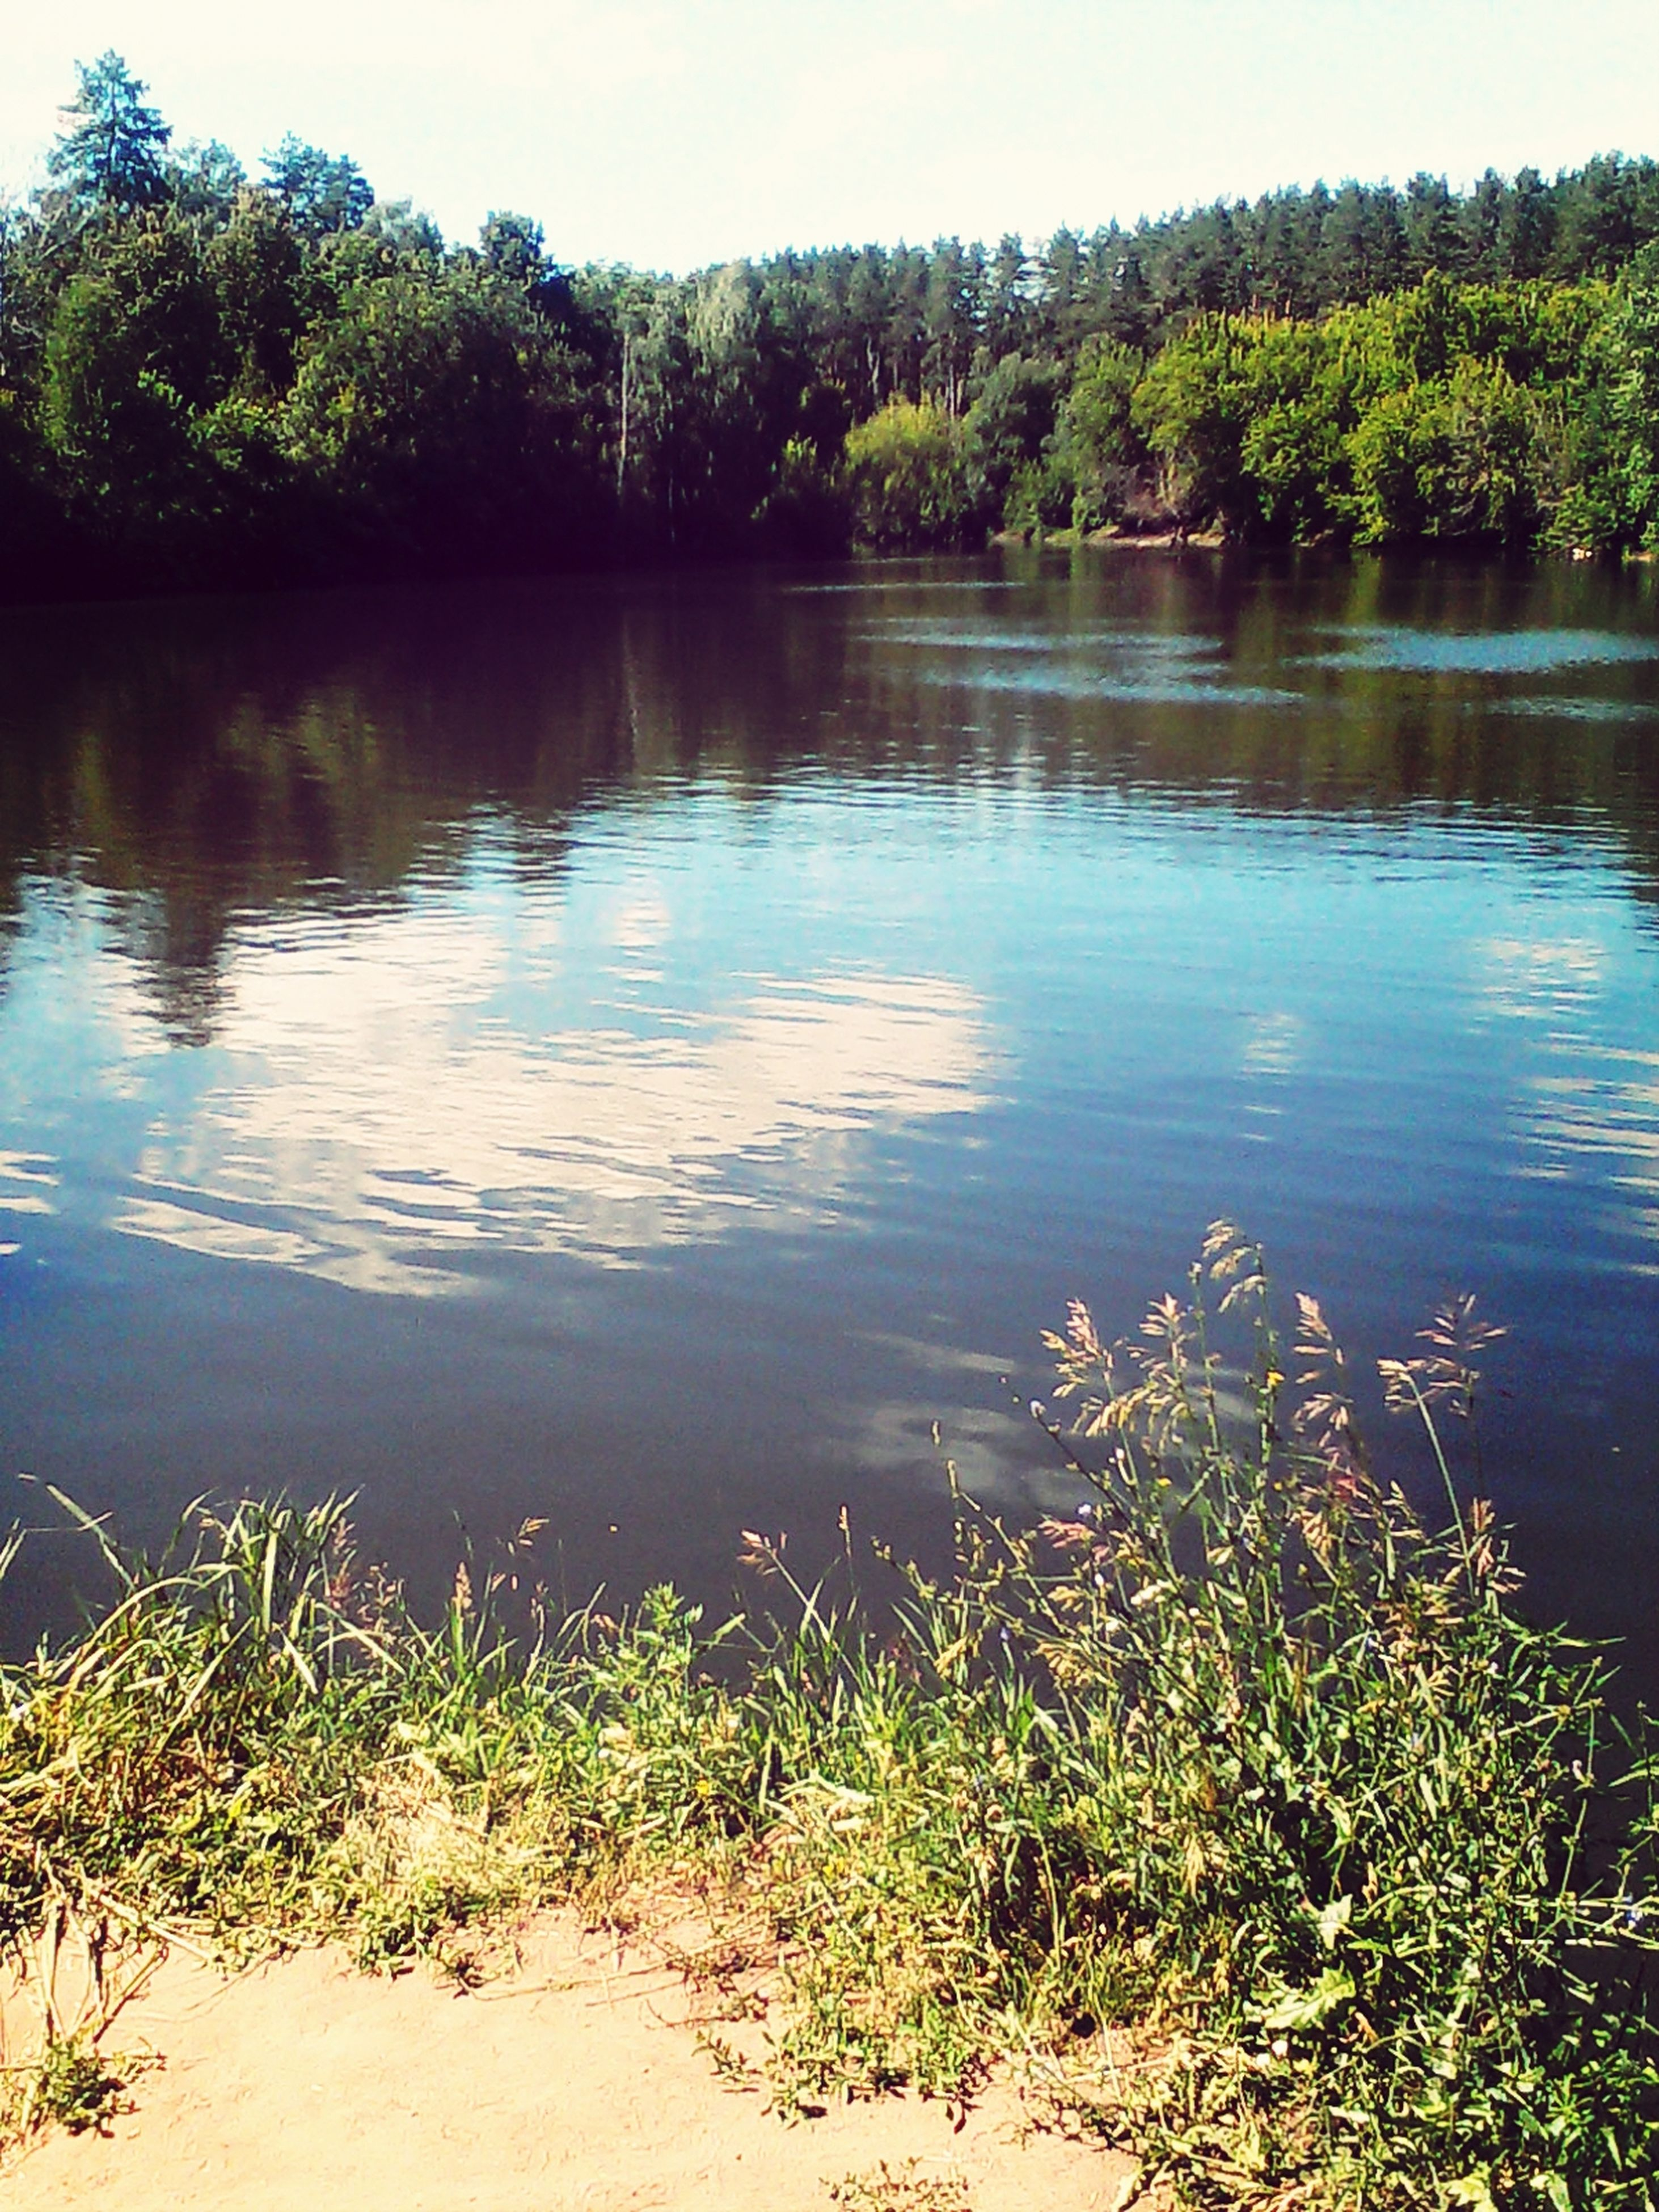 water, lake, tree, tranquility, reflection, tranquil scene, scenics, beauty in nature, nature, growth, plant, clear sky, lakeshore, idyllic, green color, day, outdoors, rippled, no people, calm